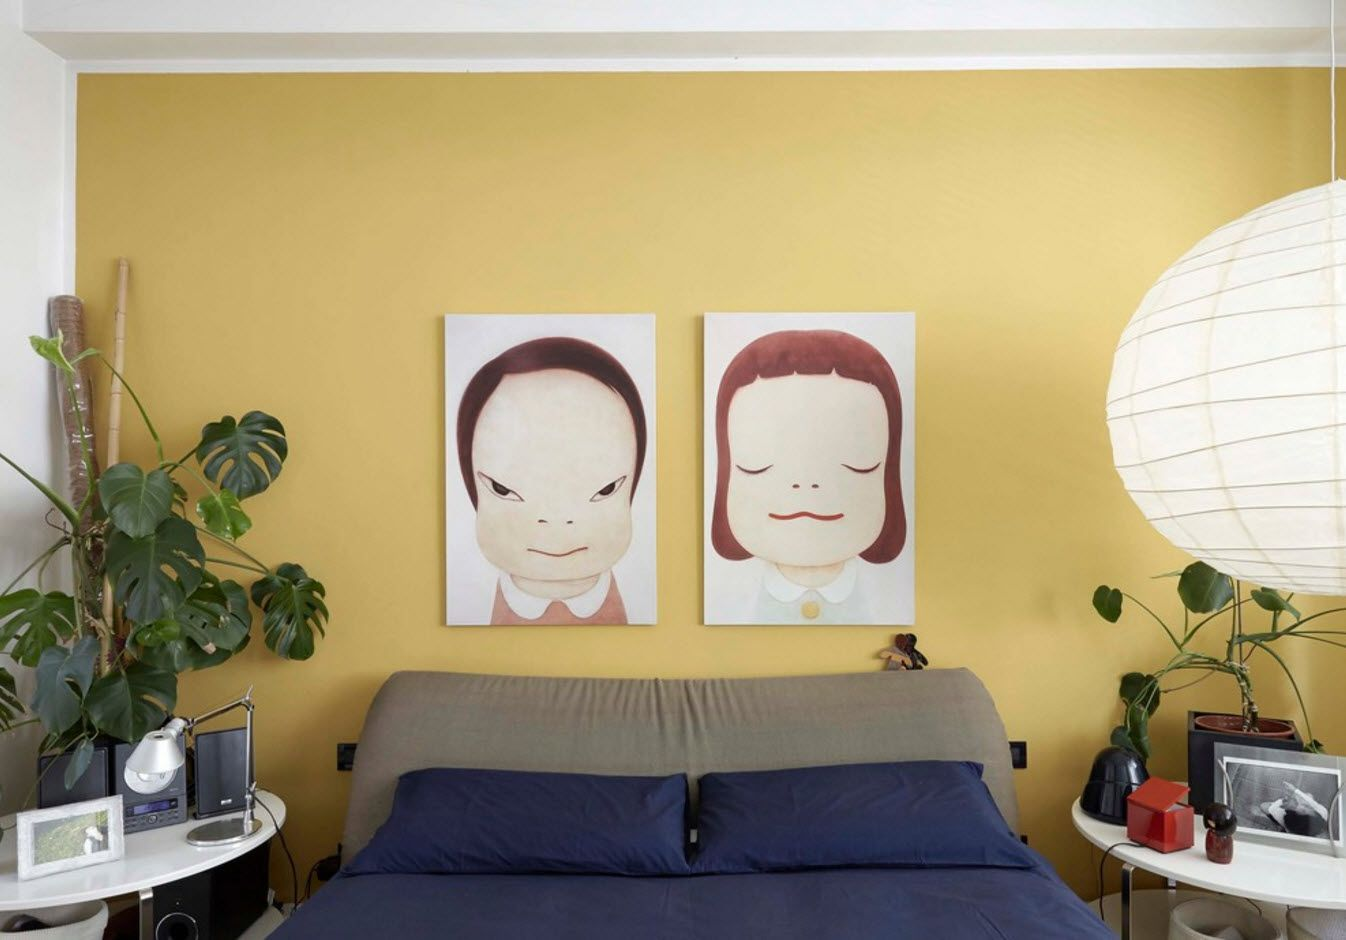 caricature pictures at the headboard